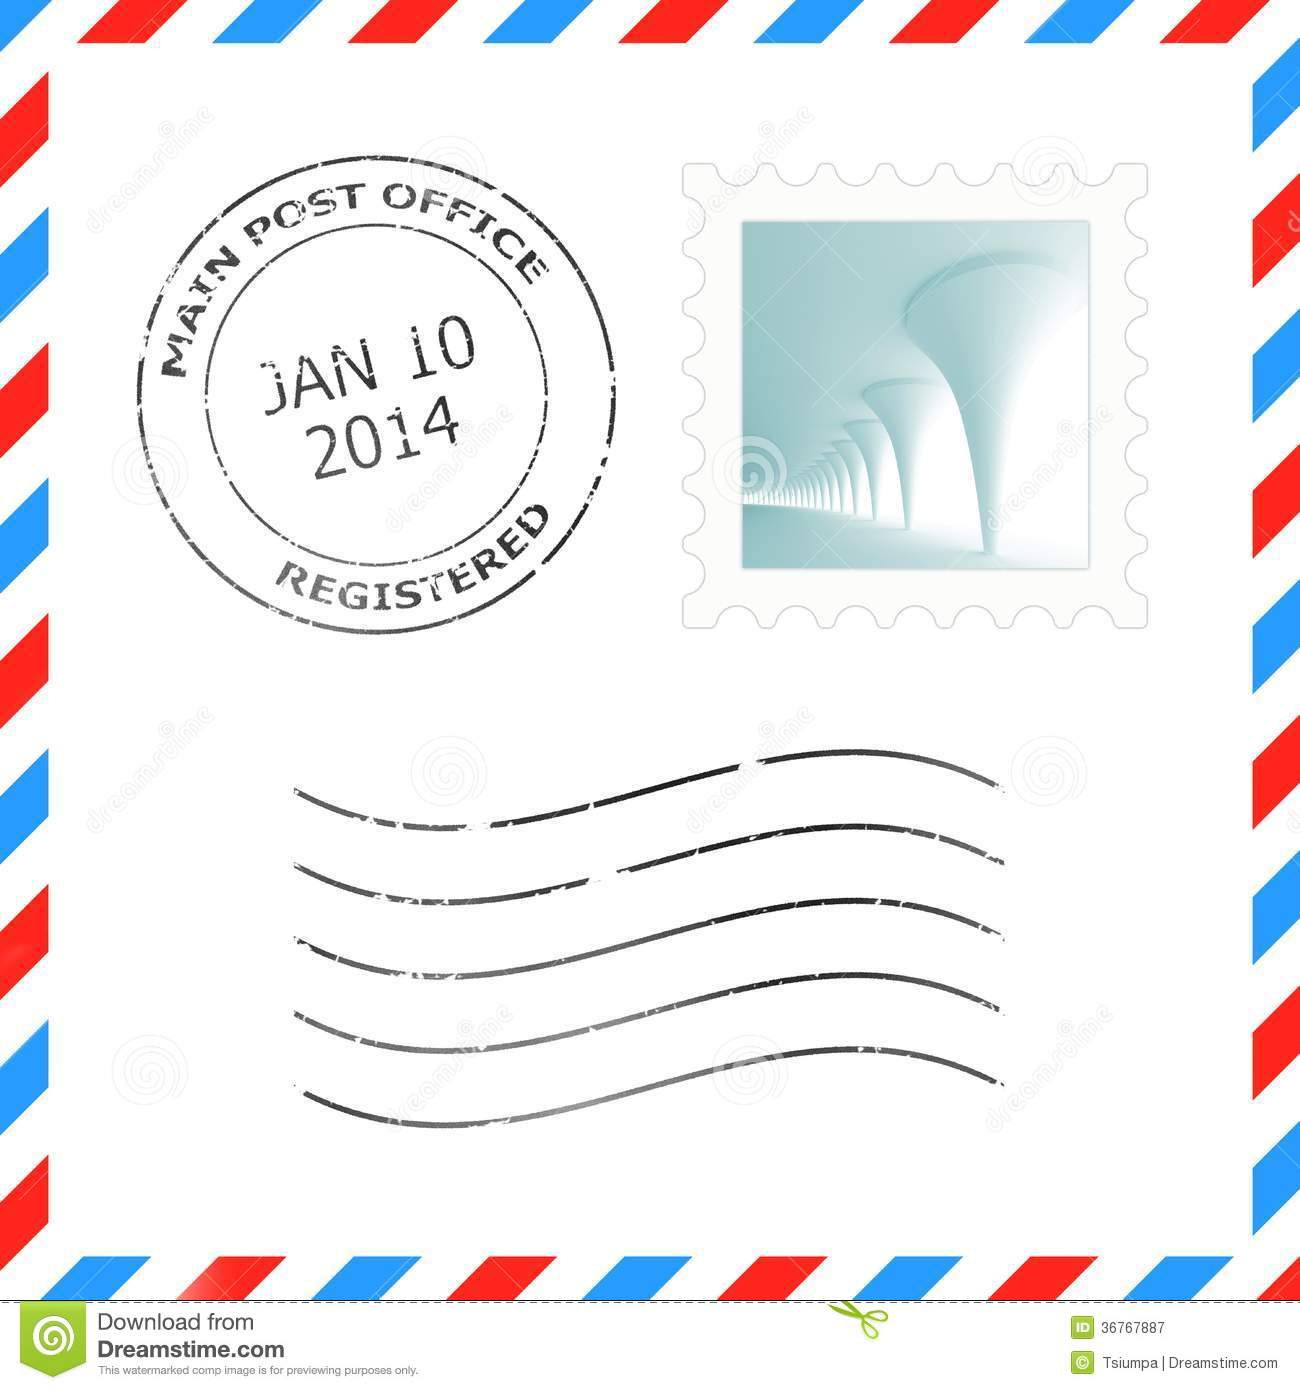 Postage stamp and postmark for a letter envelope illustrations